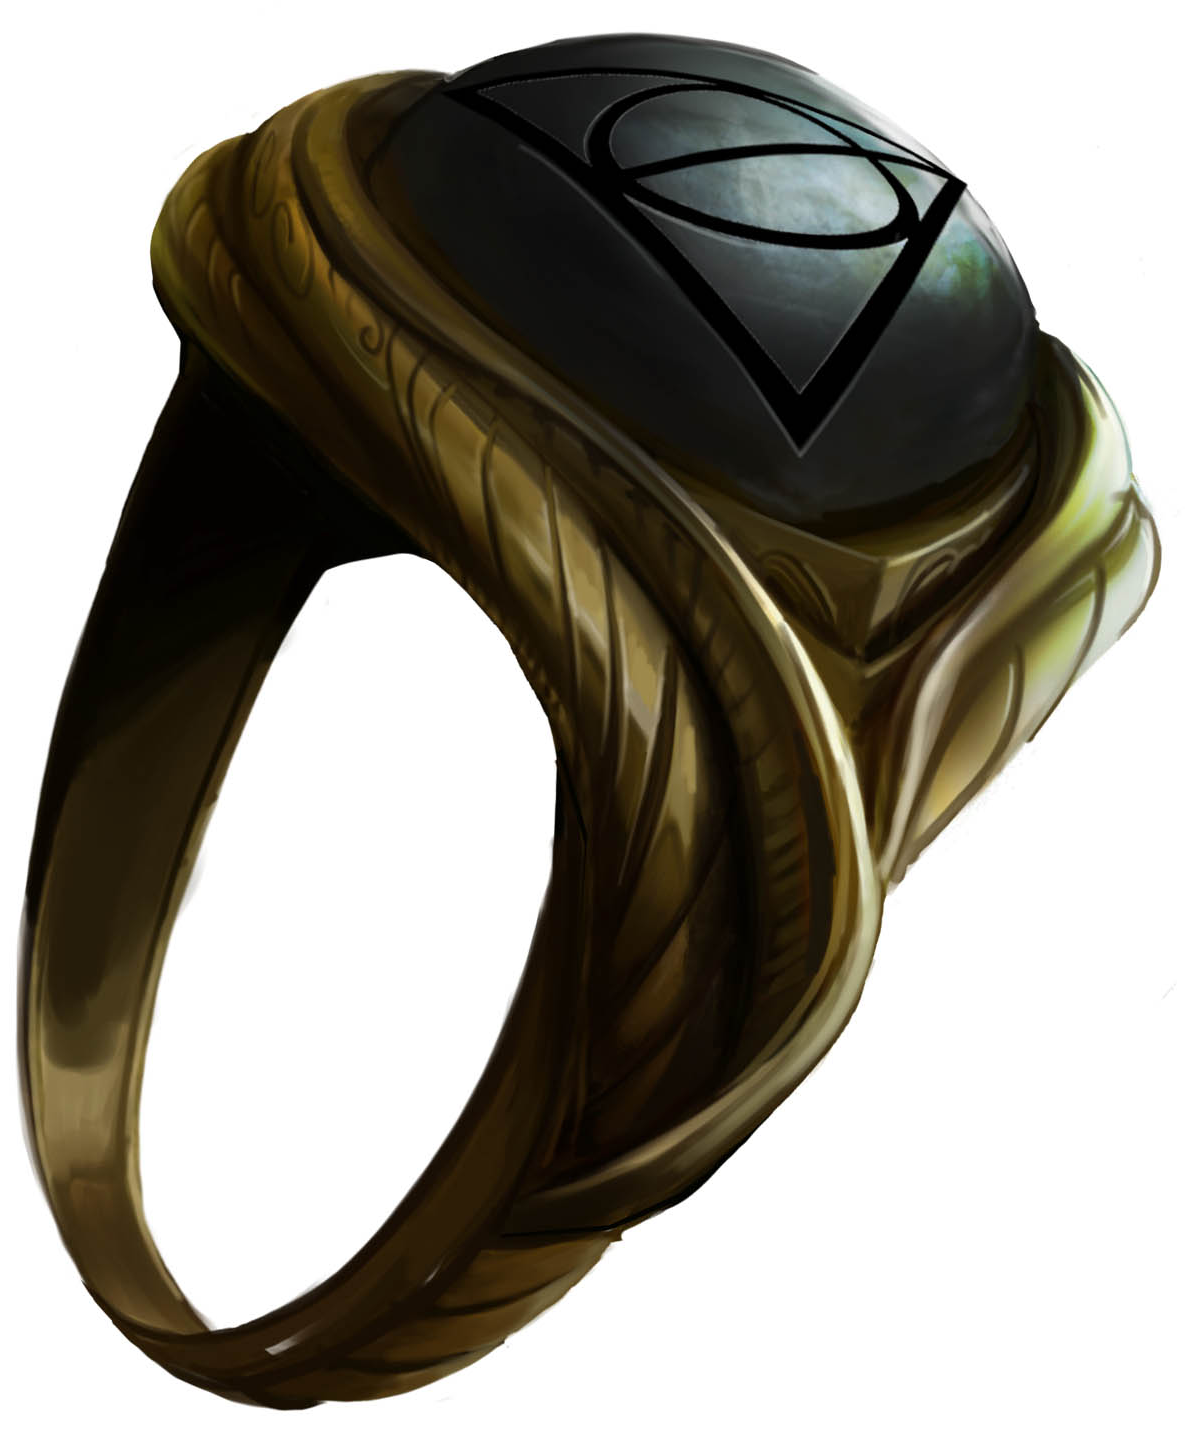 Ring guard wiki